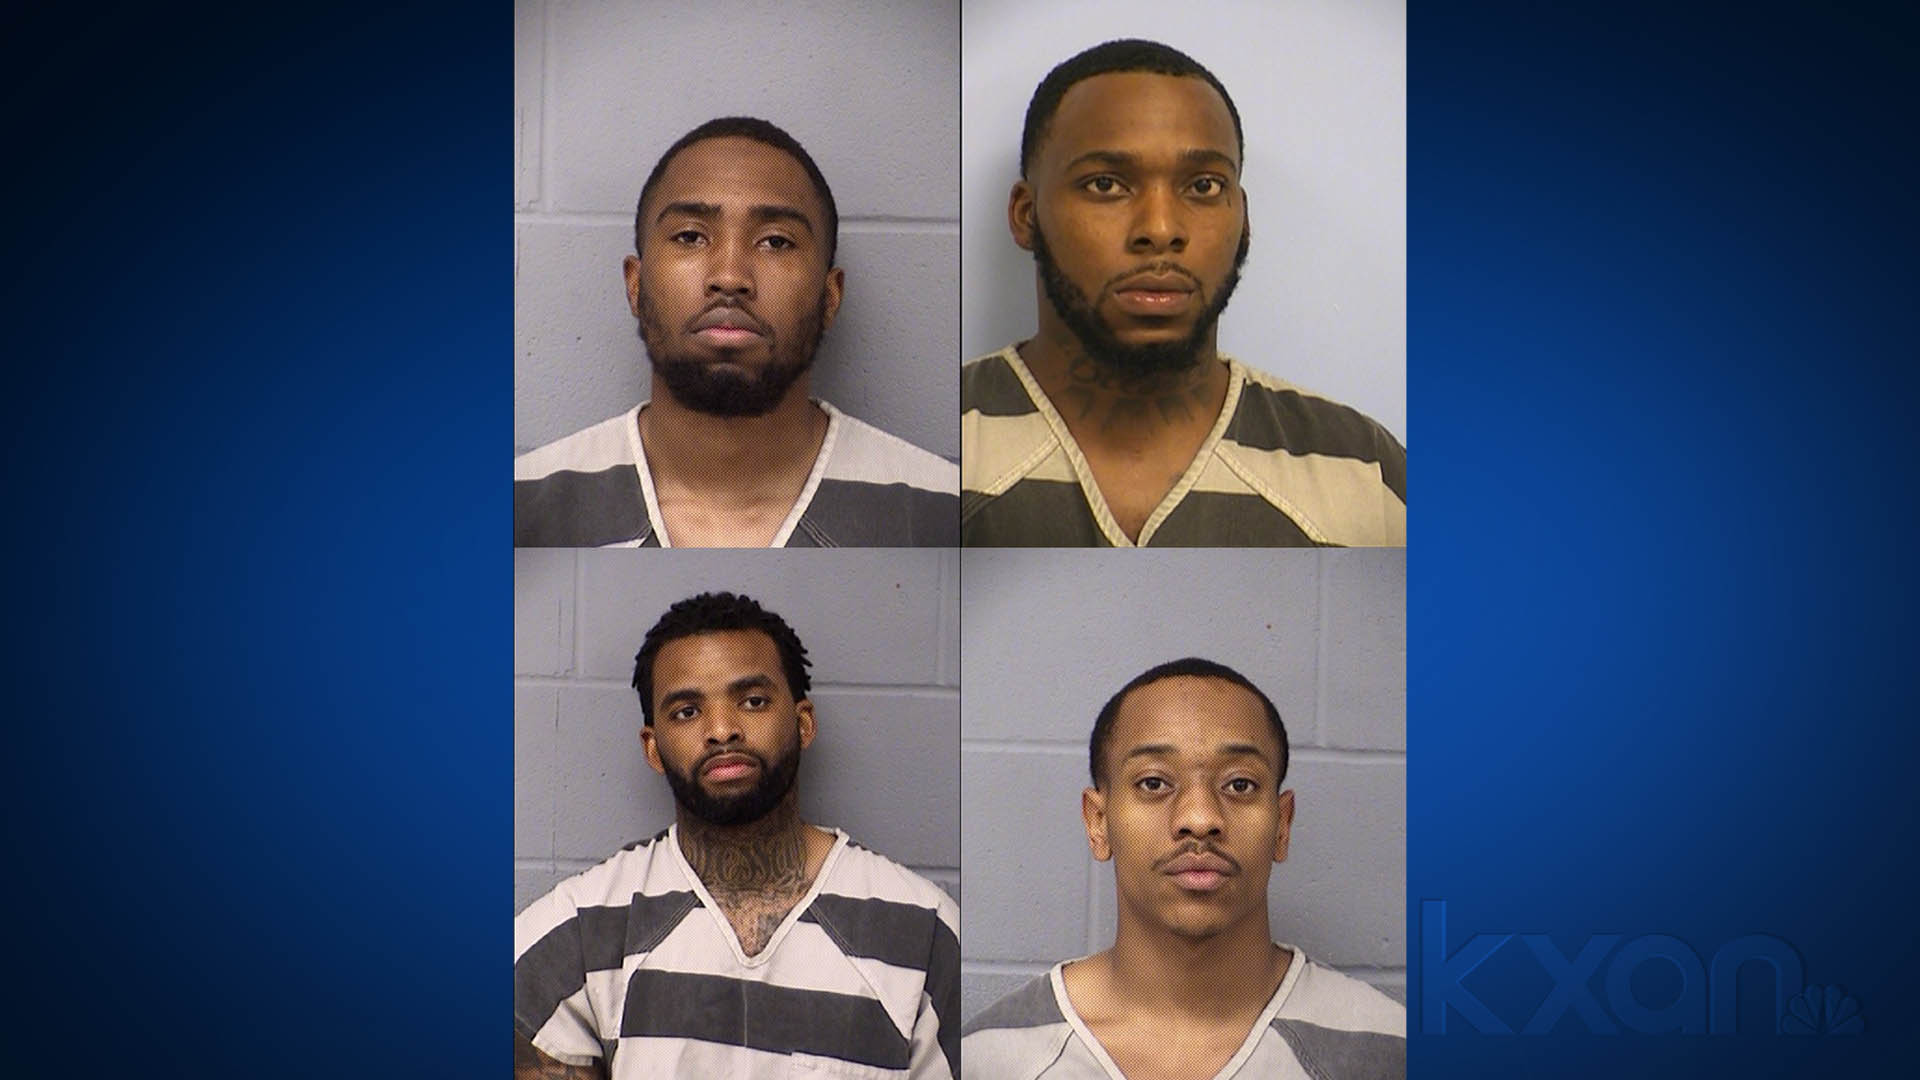 Top: Kieren Eric Dewayne McGowan, 22 (left), Michael Wayne Butler, 27 (right); Bottom: Sammie Ray Spencer, 24 (left), Tarell Deshawn Manson, 24 (right). Photos from Austin Police Department